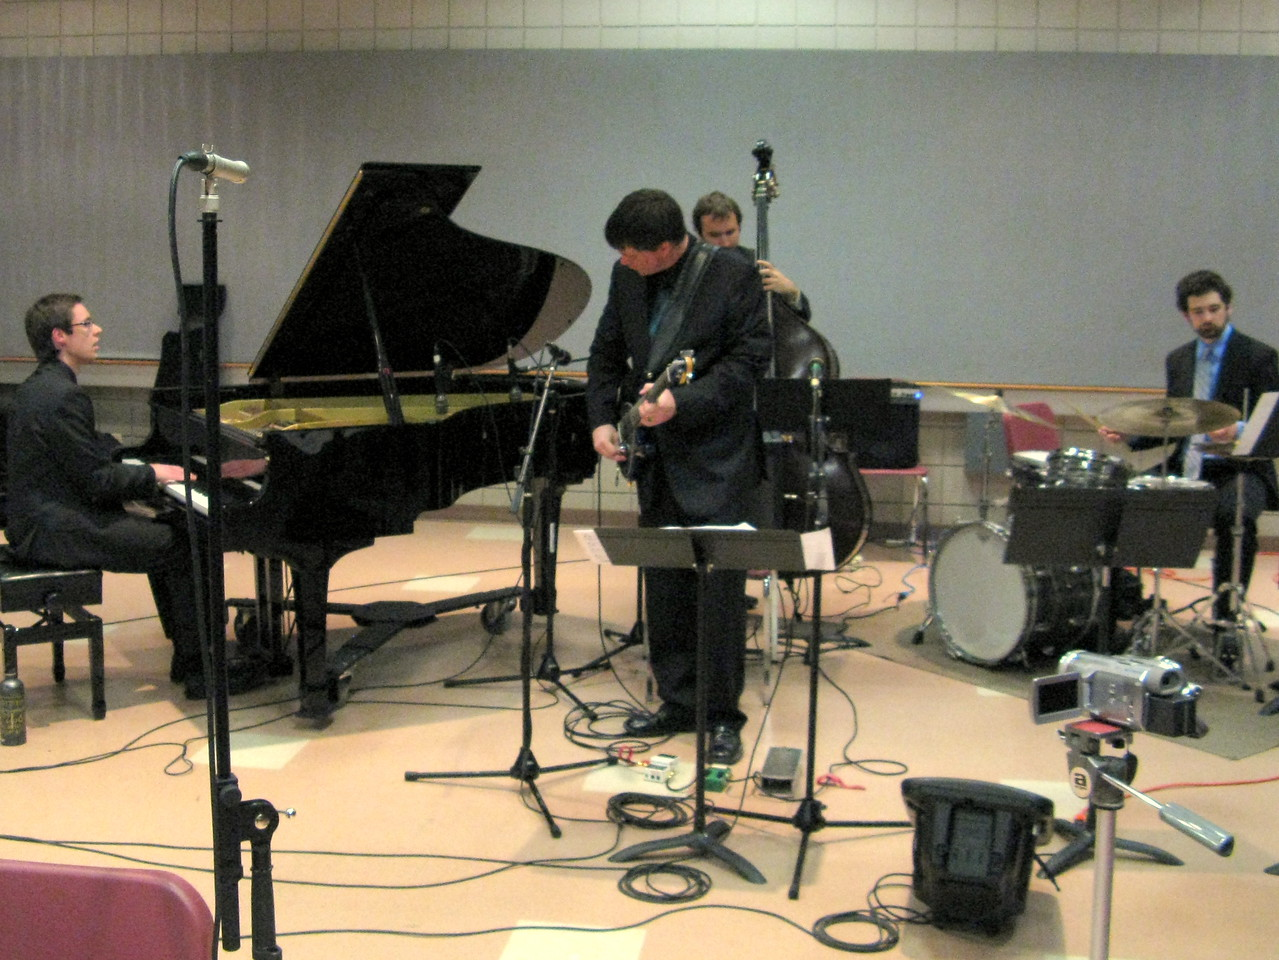 The quartet of piano, guitar, bass and drums.